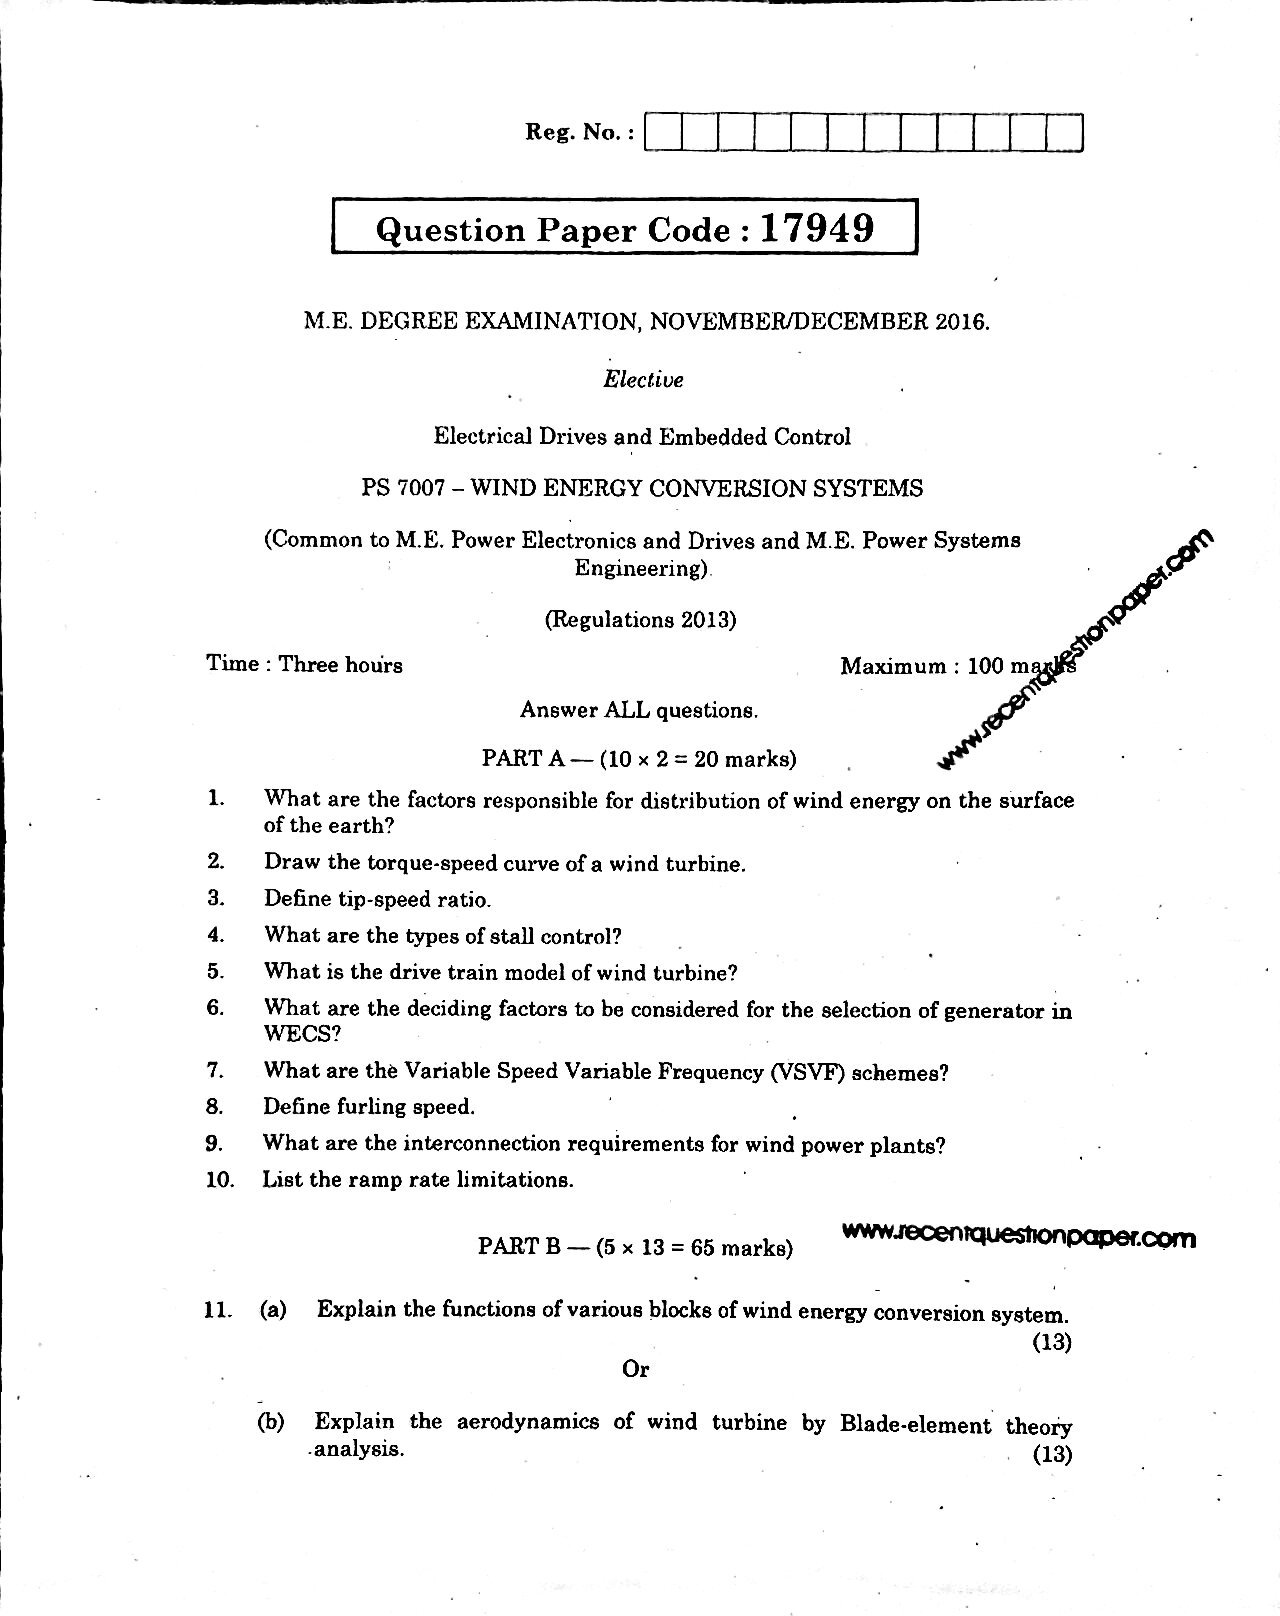 PS7007 WIND ENERGY CONVERSION SYSTEMS 1 Recent Question Paper